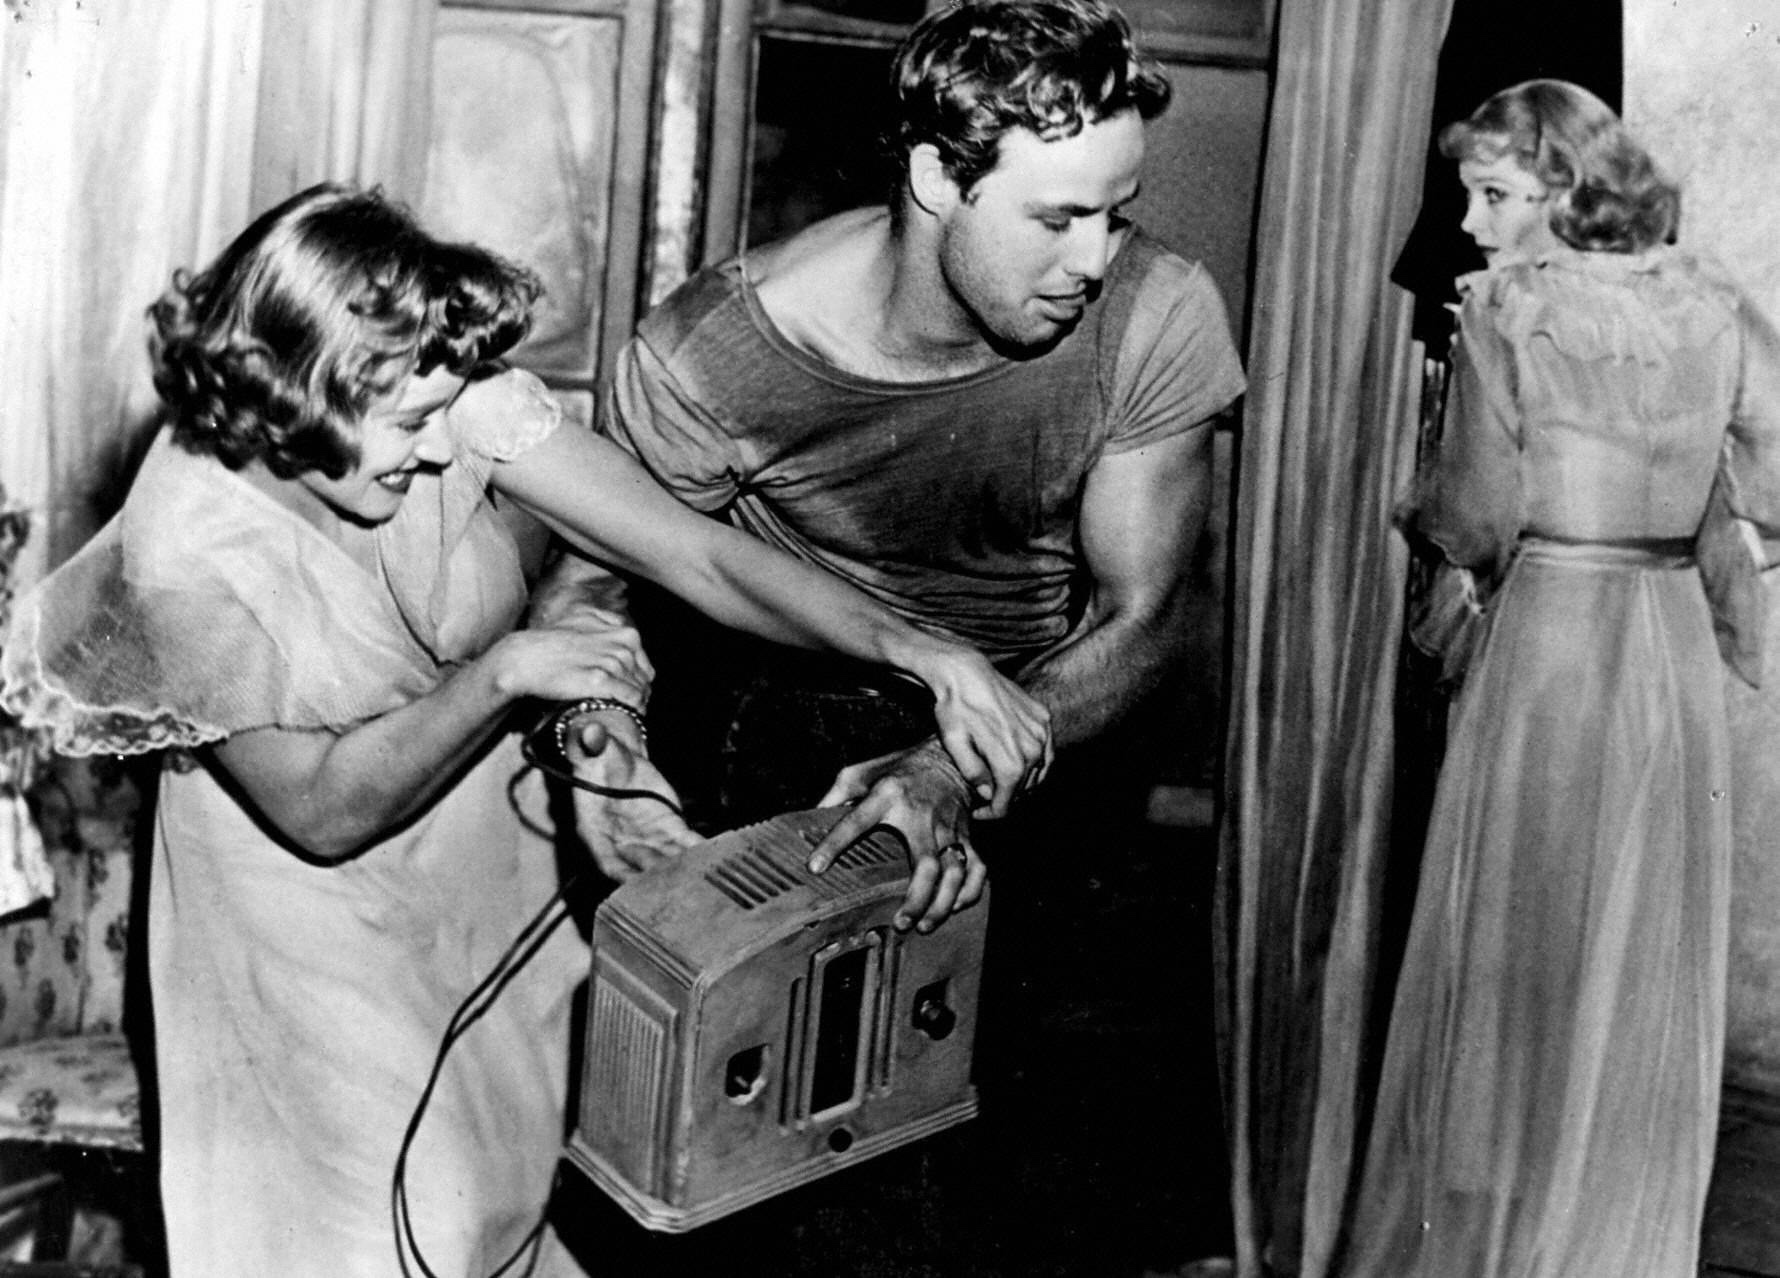 An image from A Streetcar Named Desire of a fight